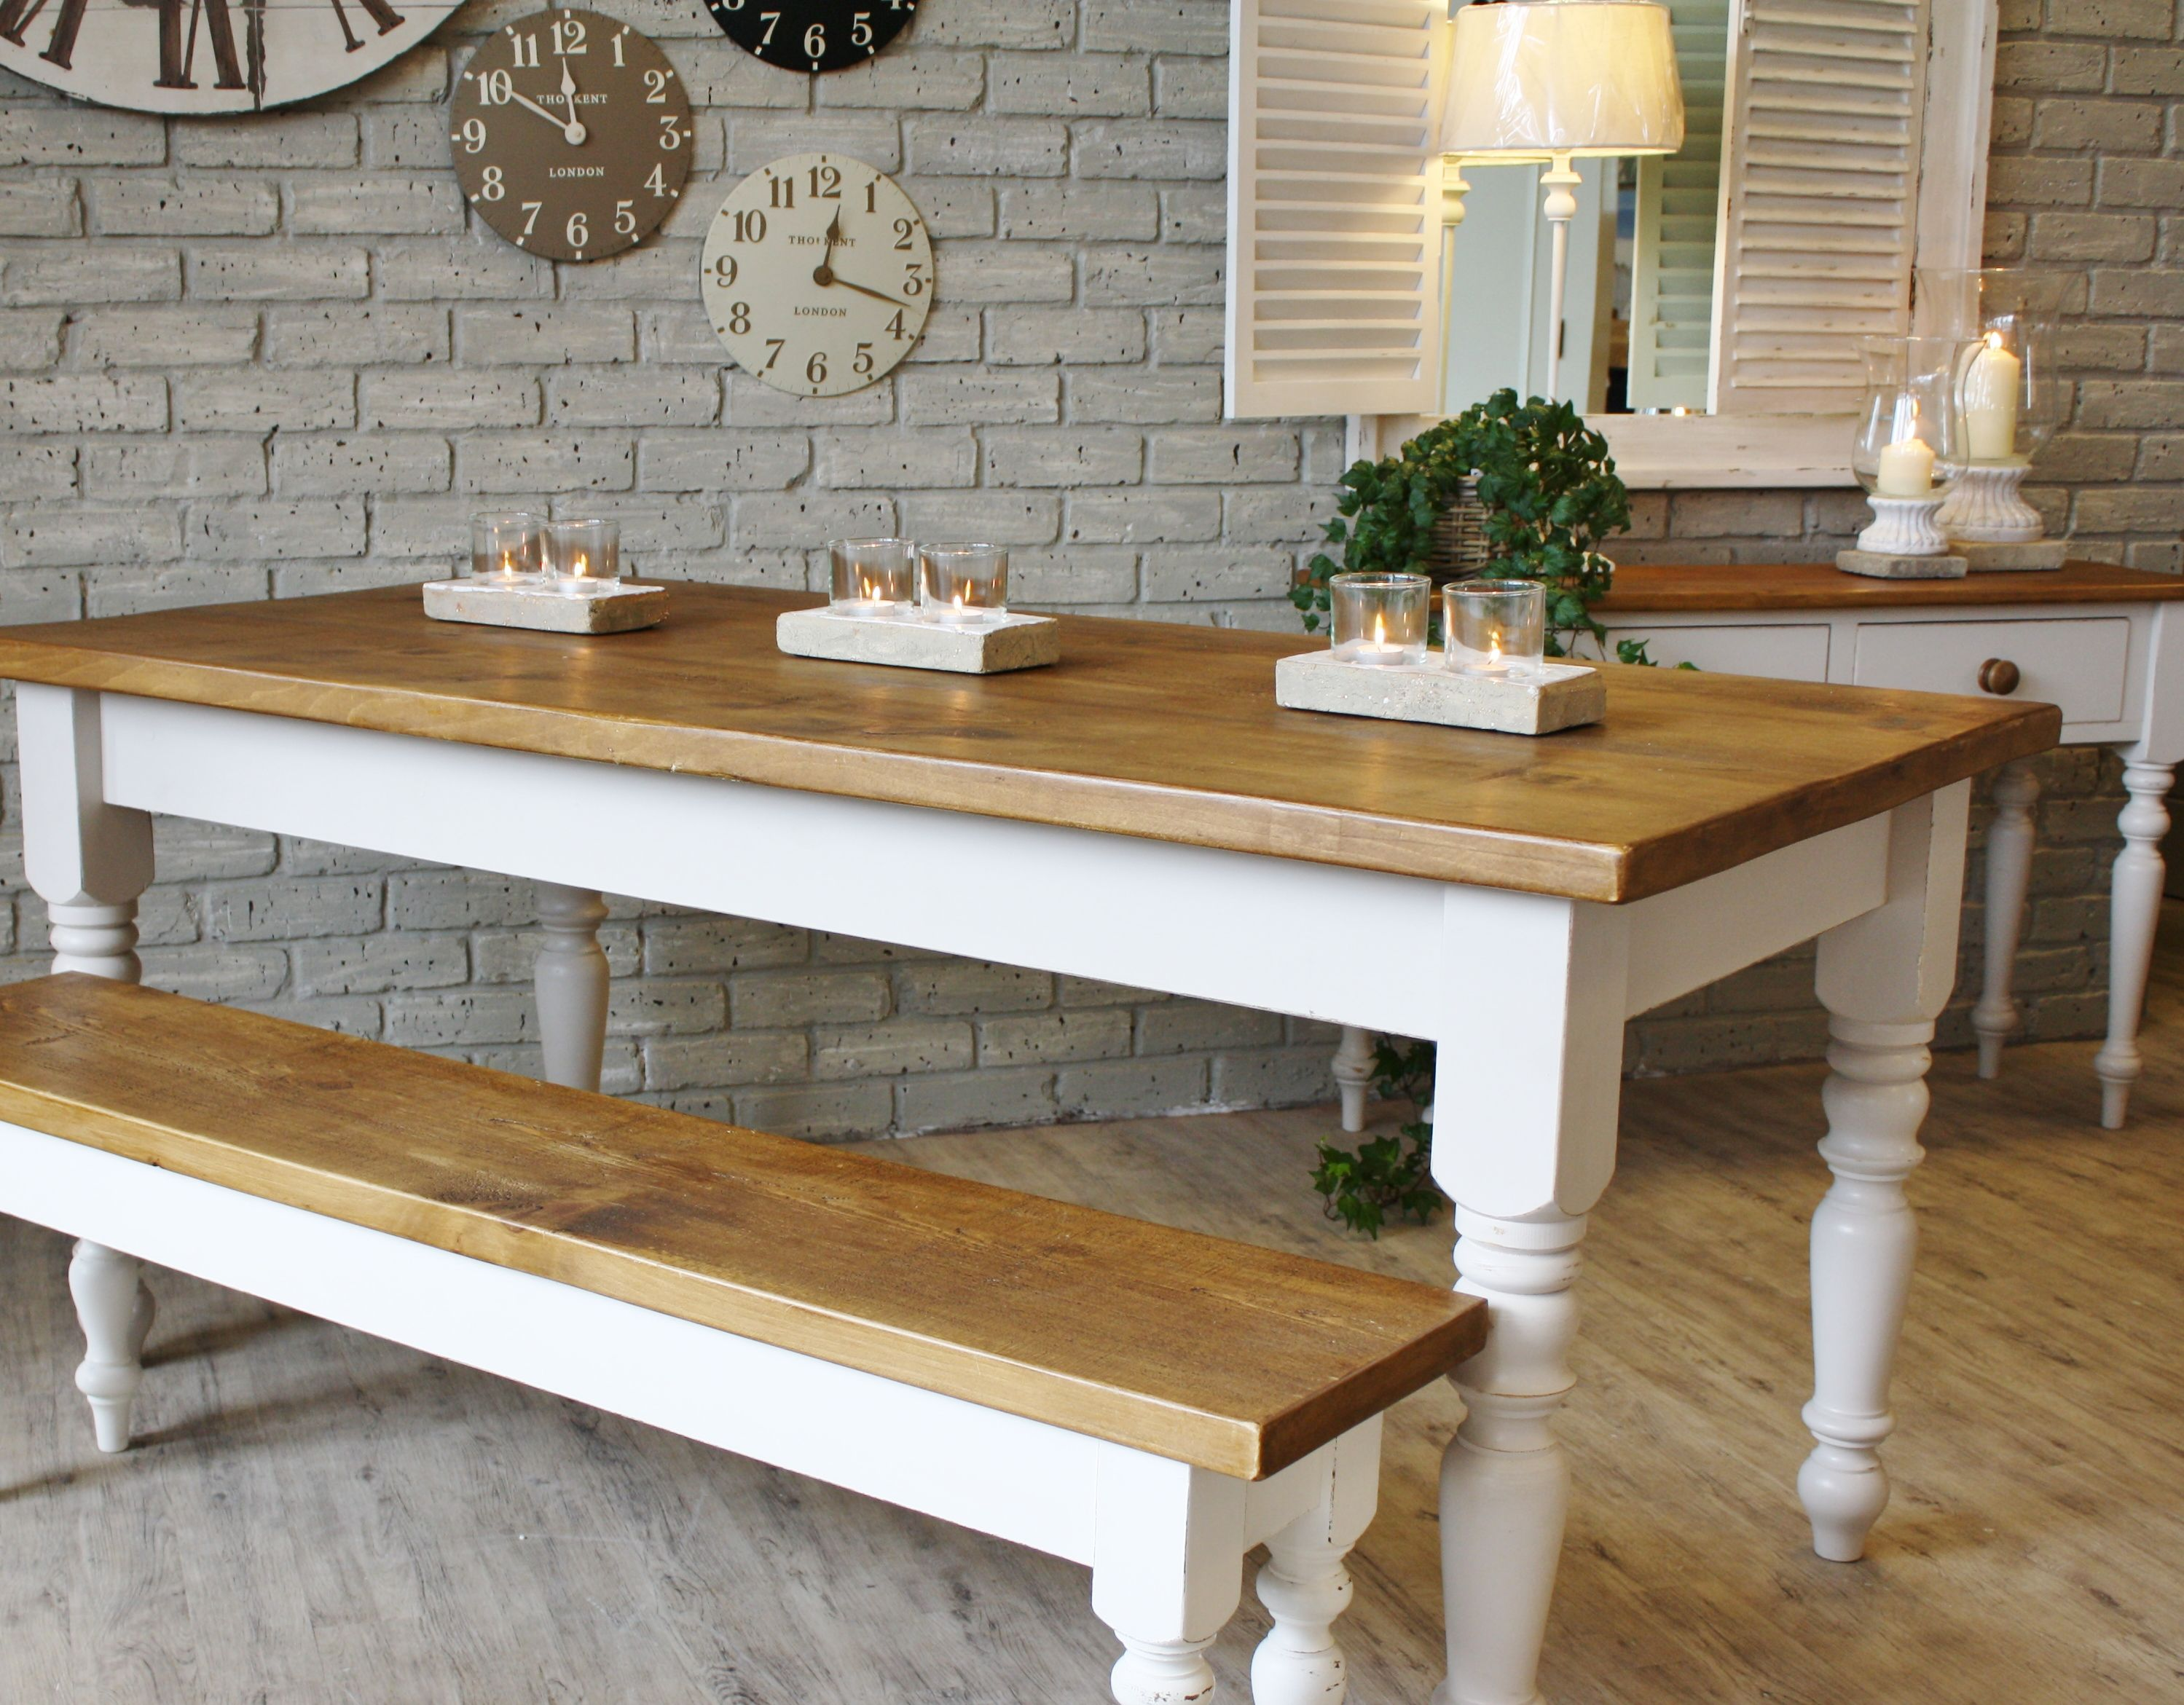 country kitchen tables white and cream farmhouse White Cream Farmhouse Wooden Kitchen Tables with Candle Holders